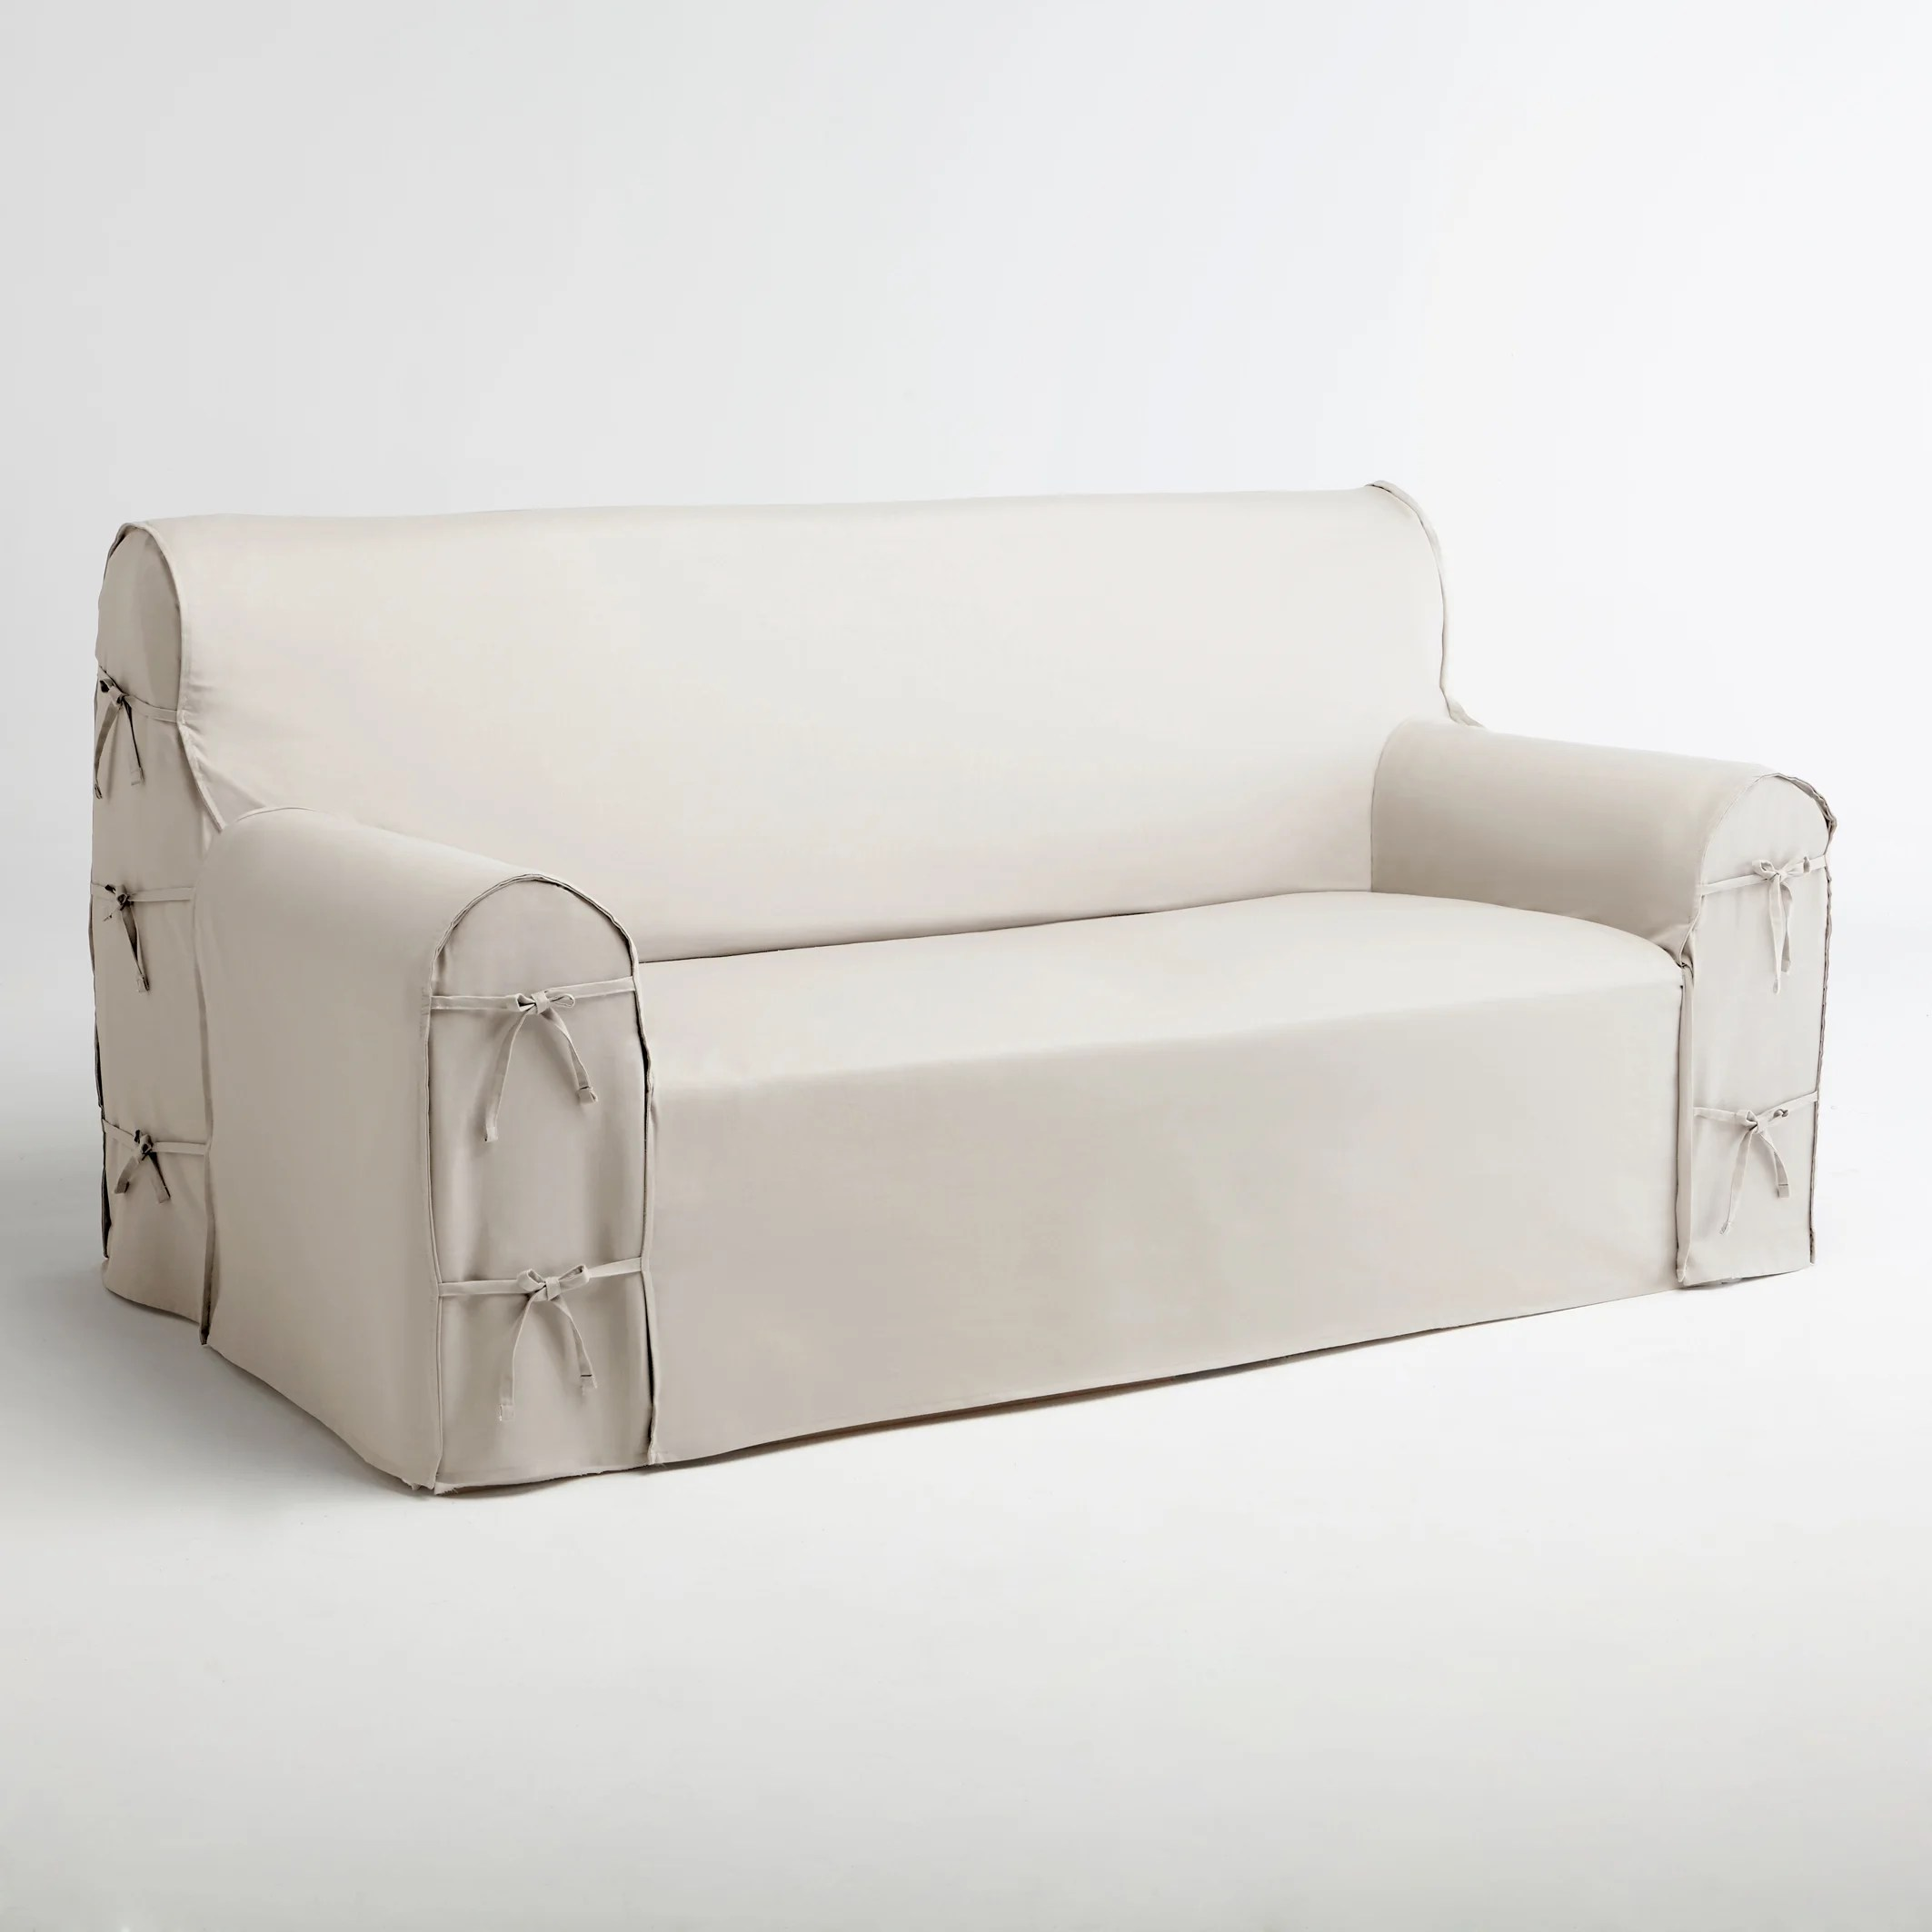 chair covers sofa table and 2 chairs la redoute cover interieurs